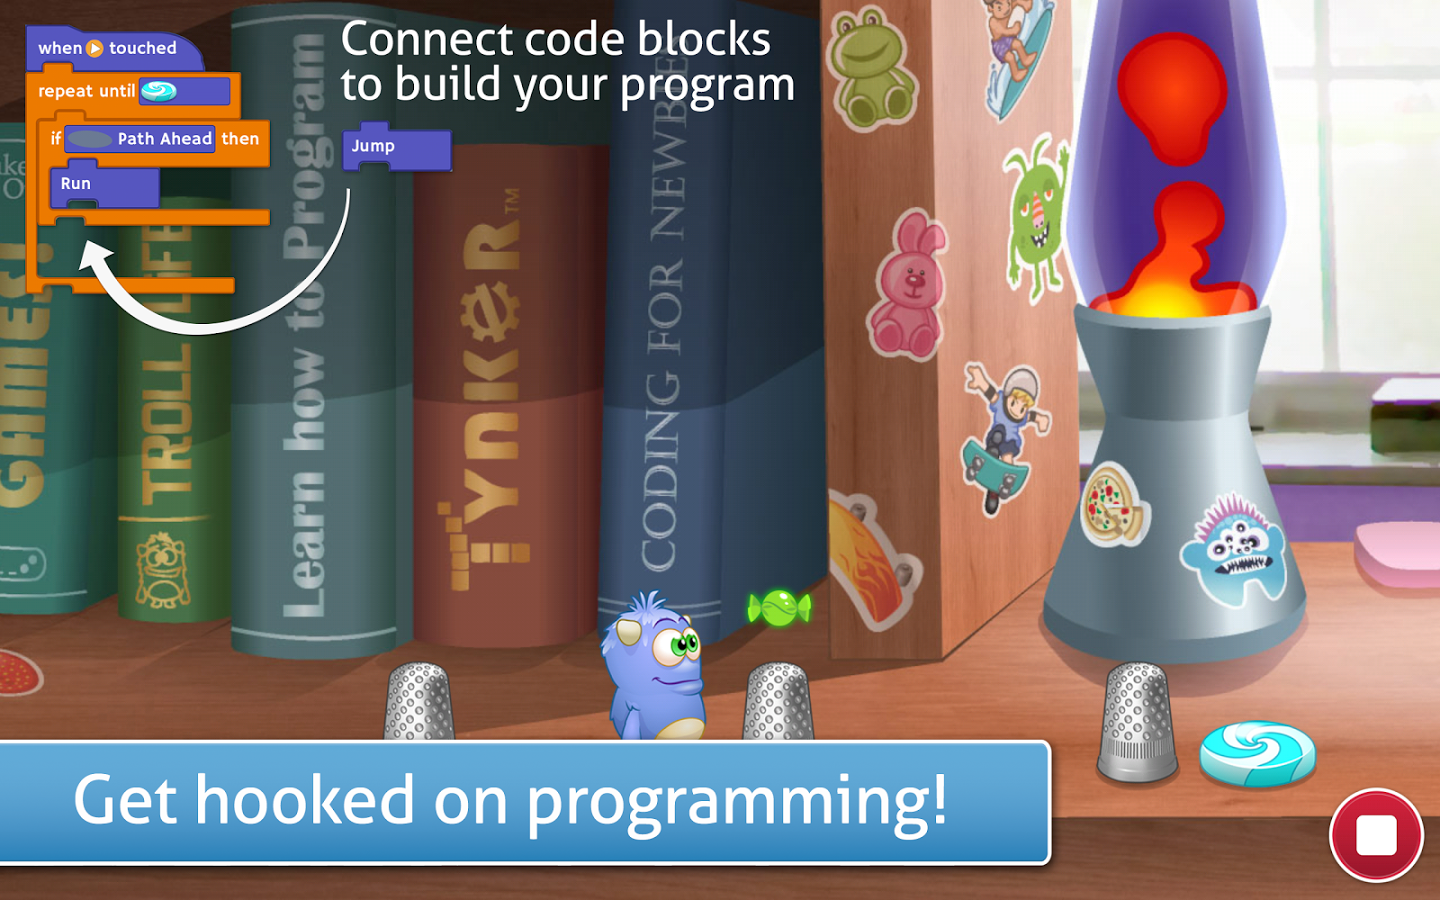 [New App] Kid-Friendly Programming App Tynker Lands On Android Tablets With An Extra Game-Making Mode